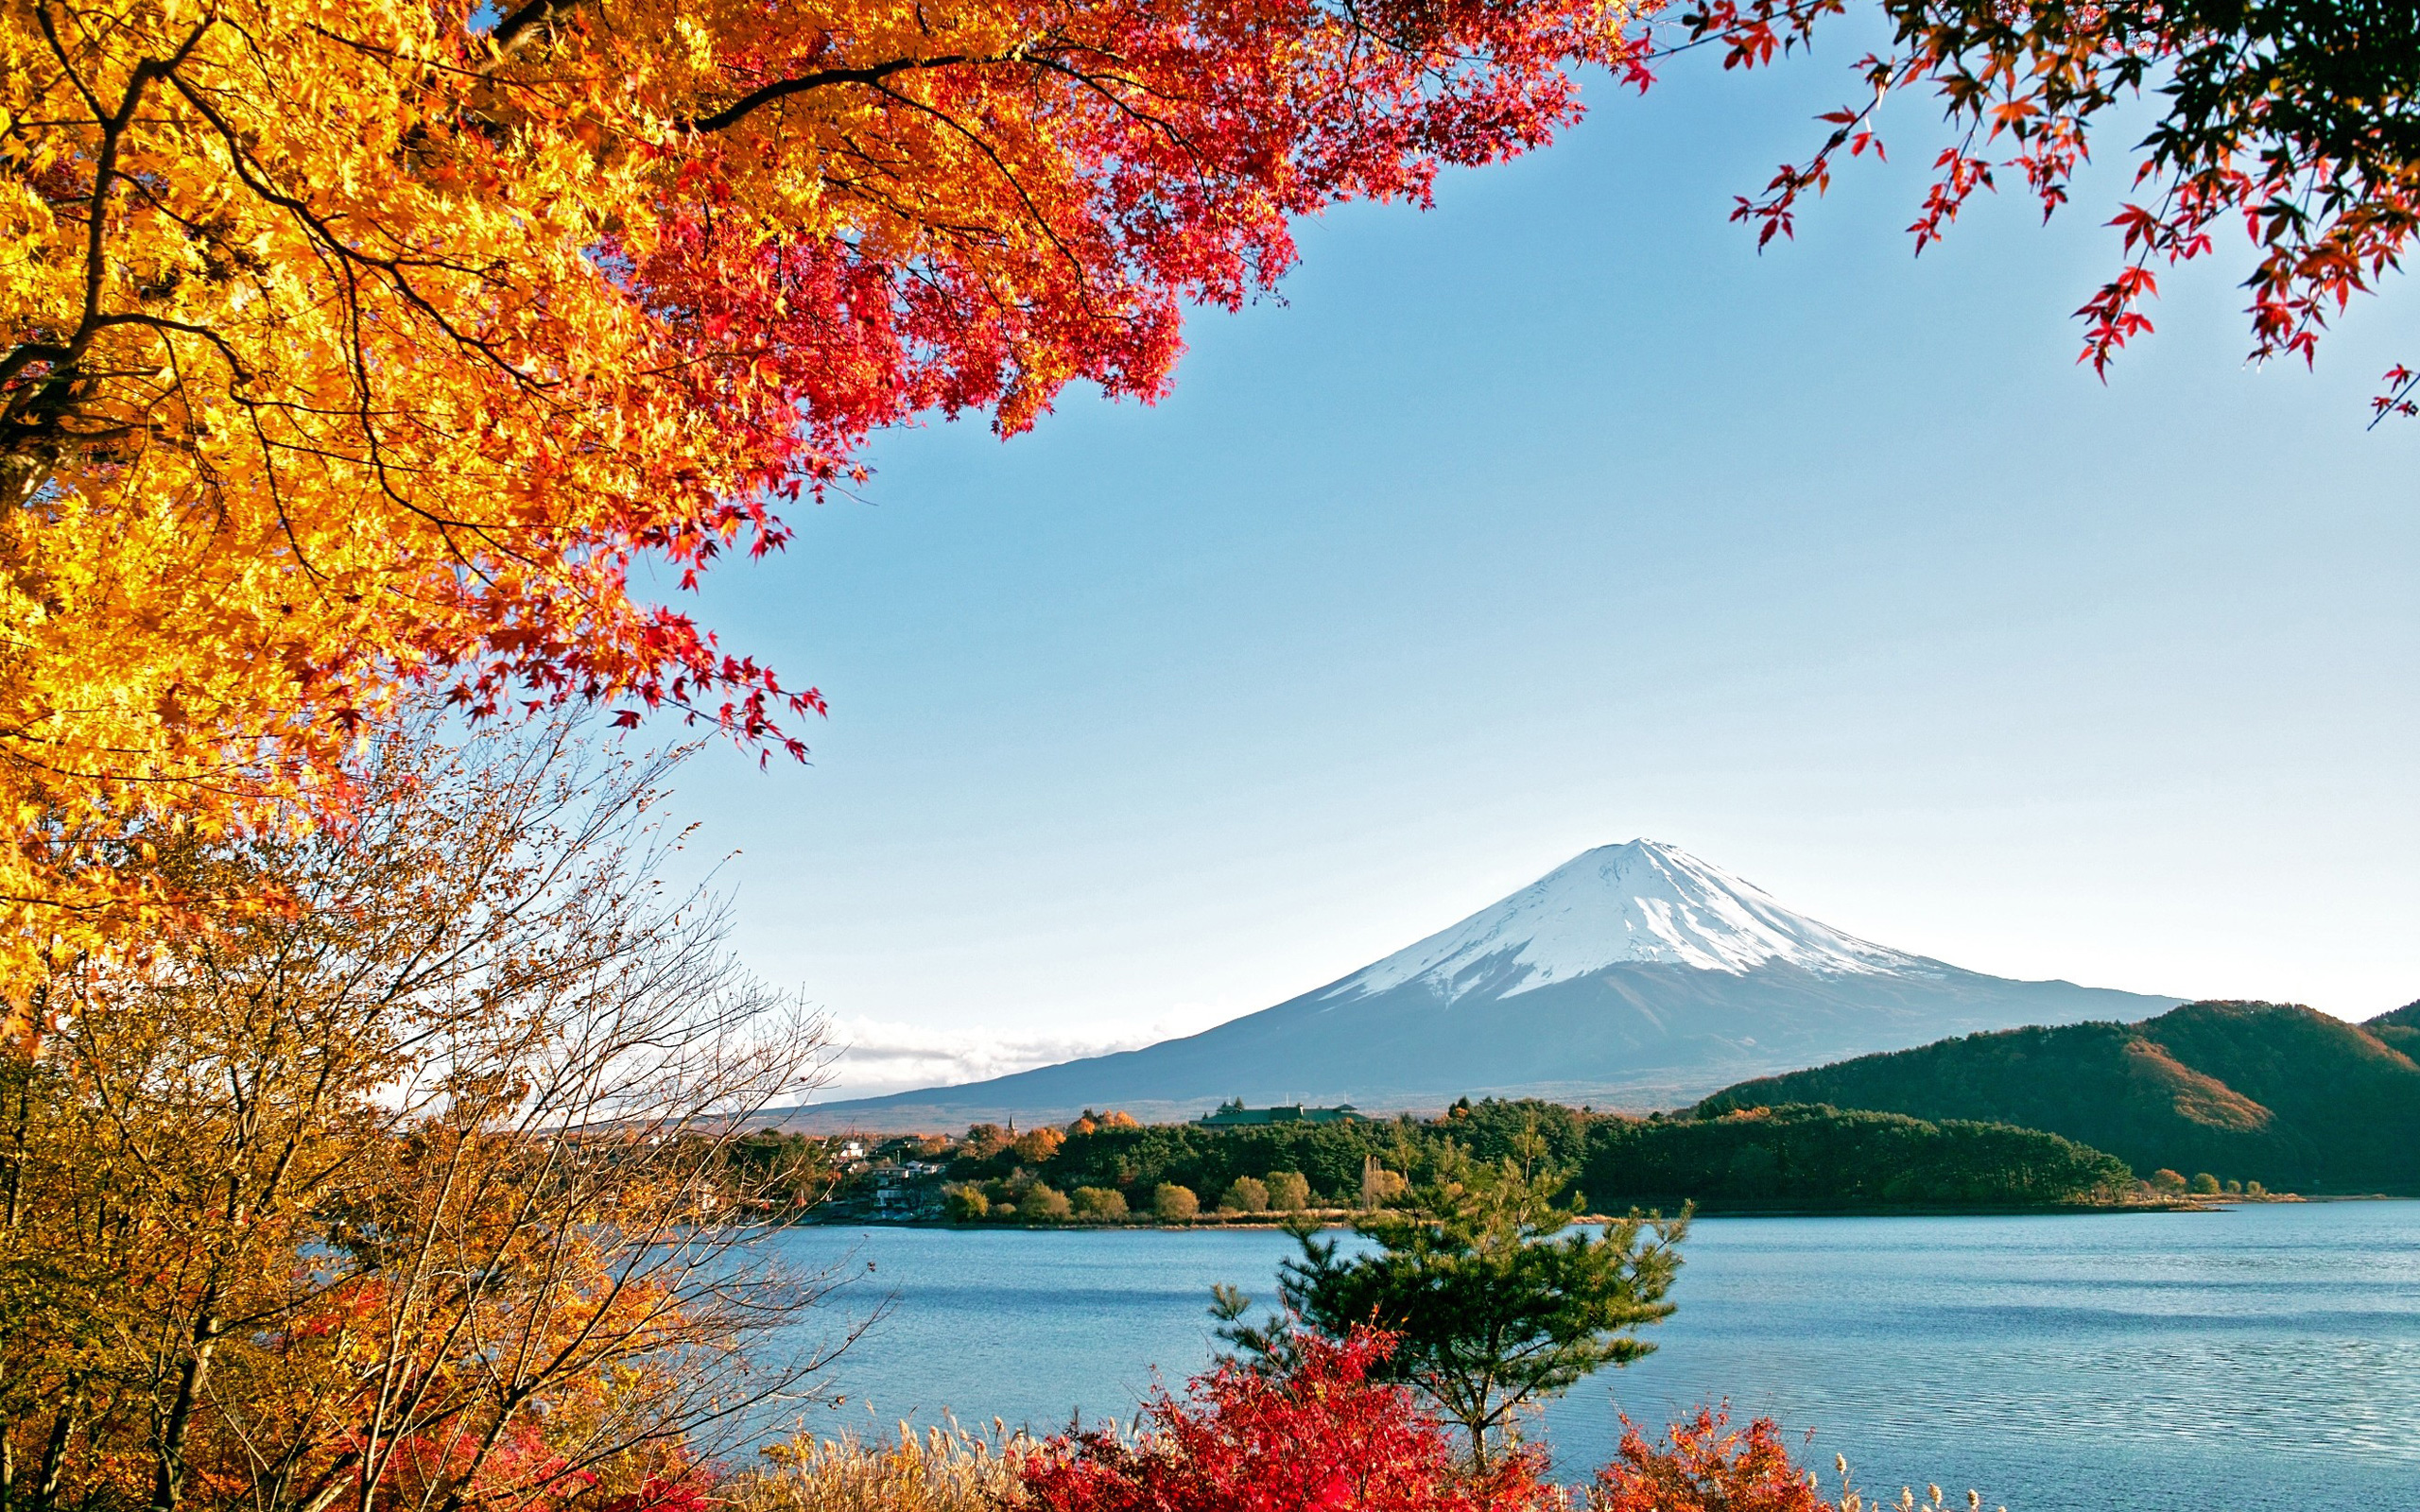 Autumn Trees Colorful Leaves HD Wallpaper 2560x1600